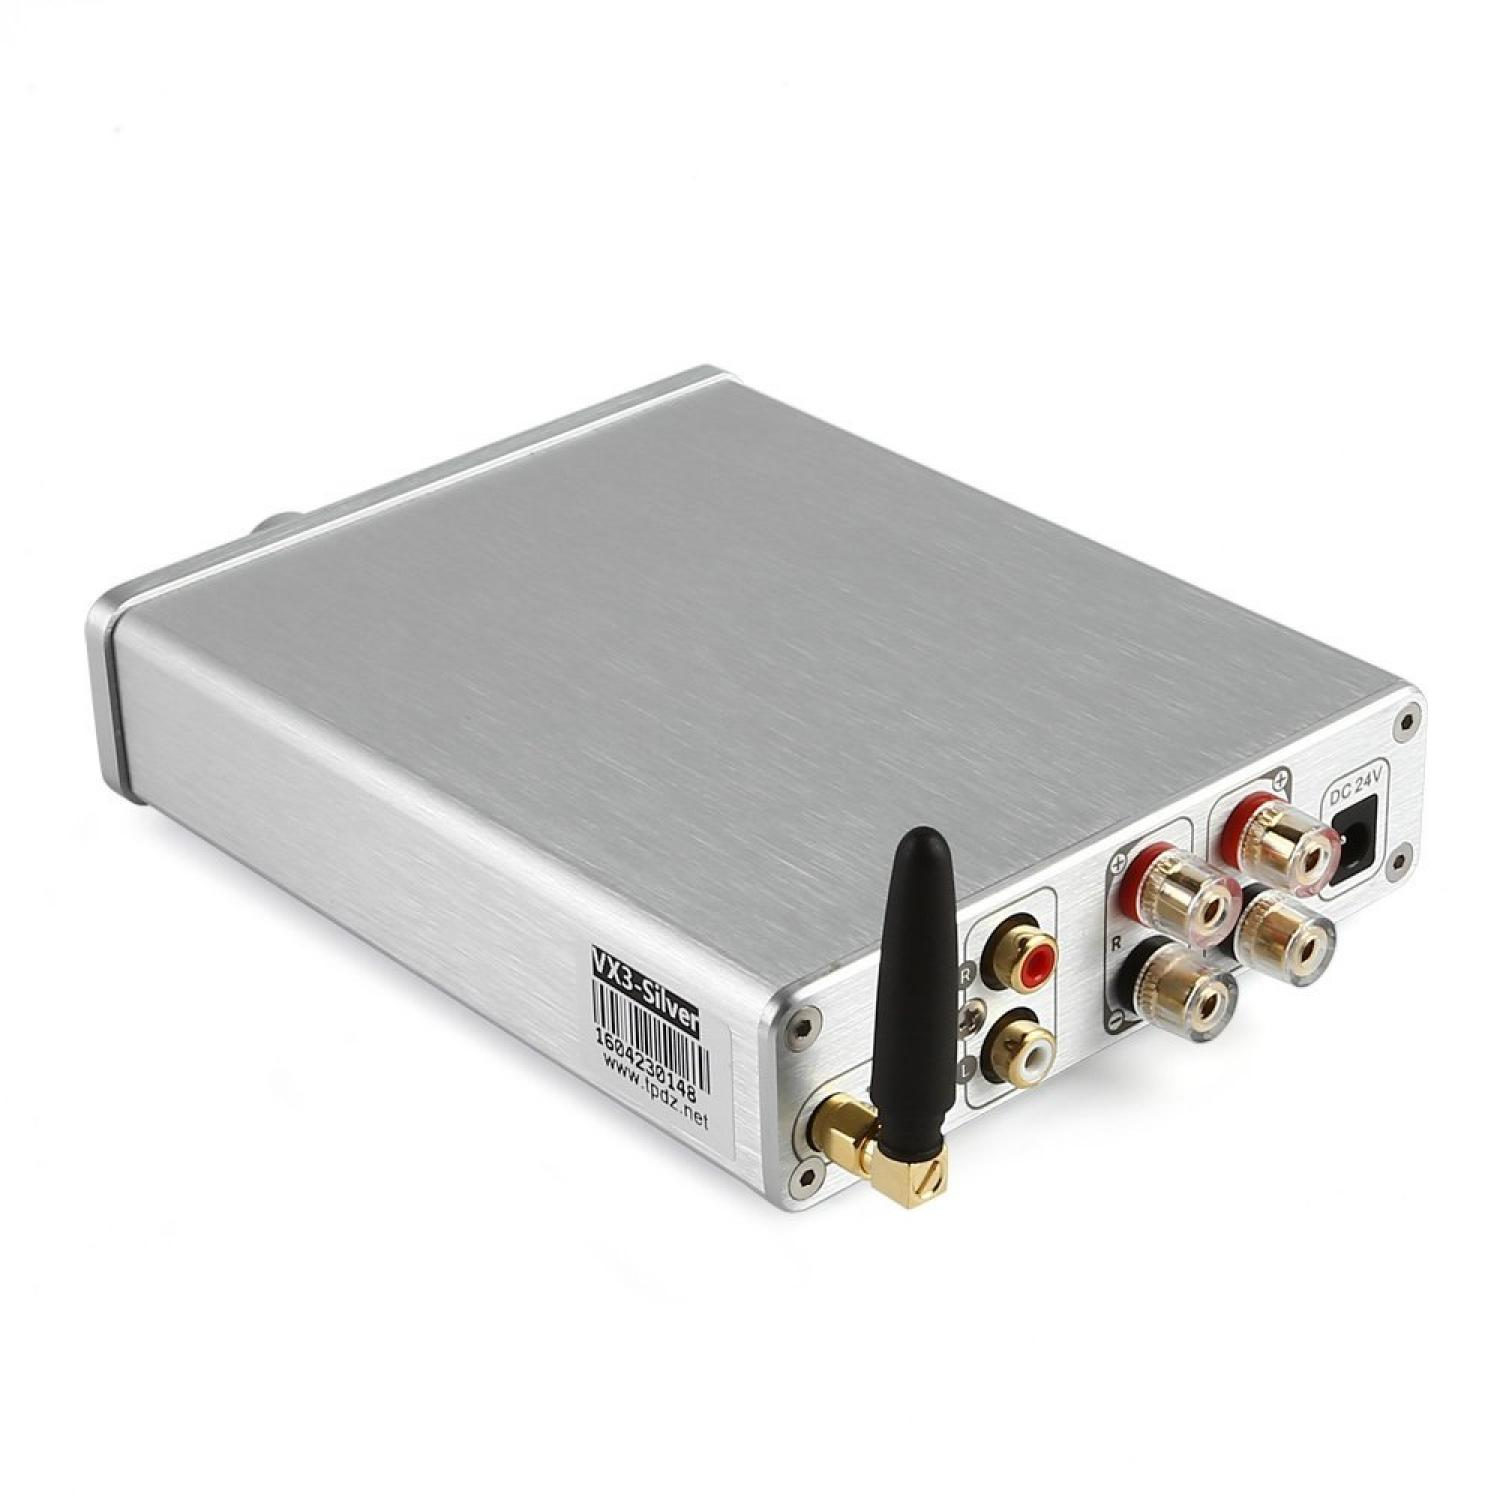 Topping VX3 Vertex Bluetooth Amplifier 35Wx2 with Headphone Amp